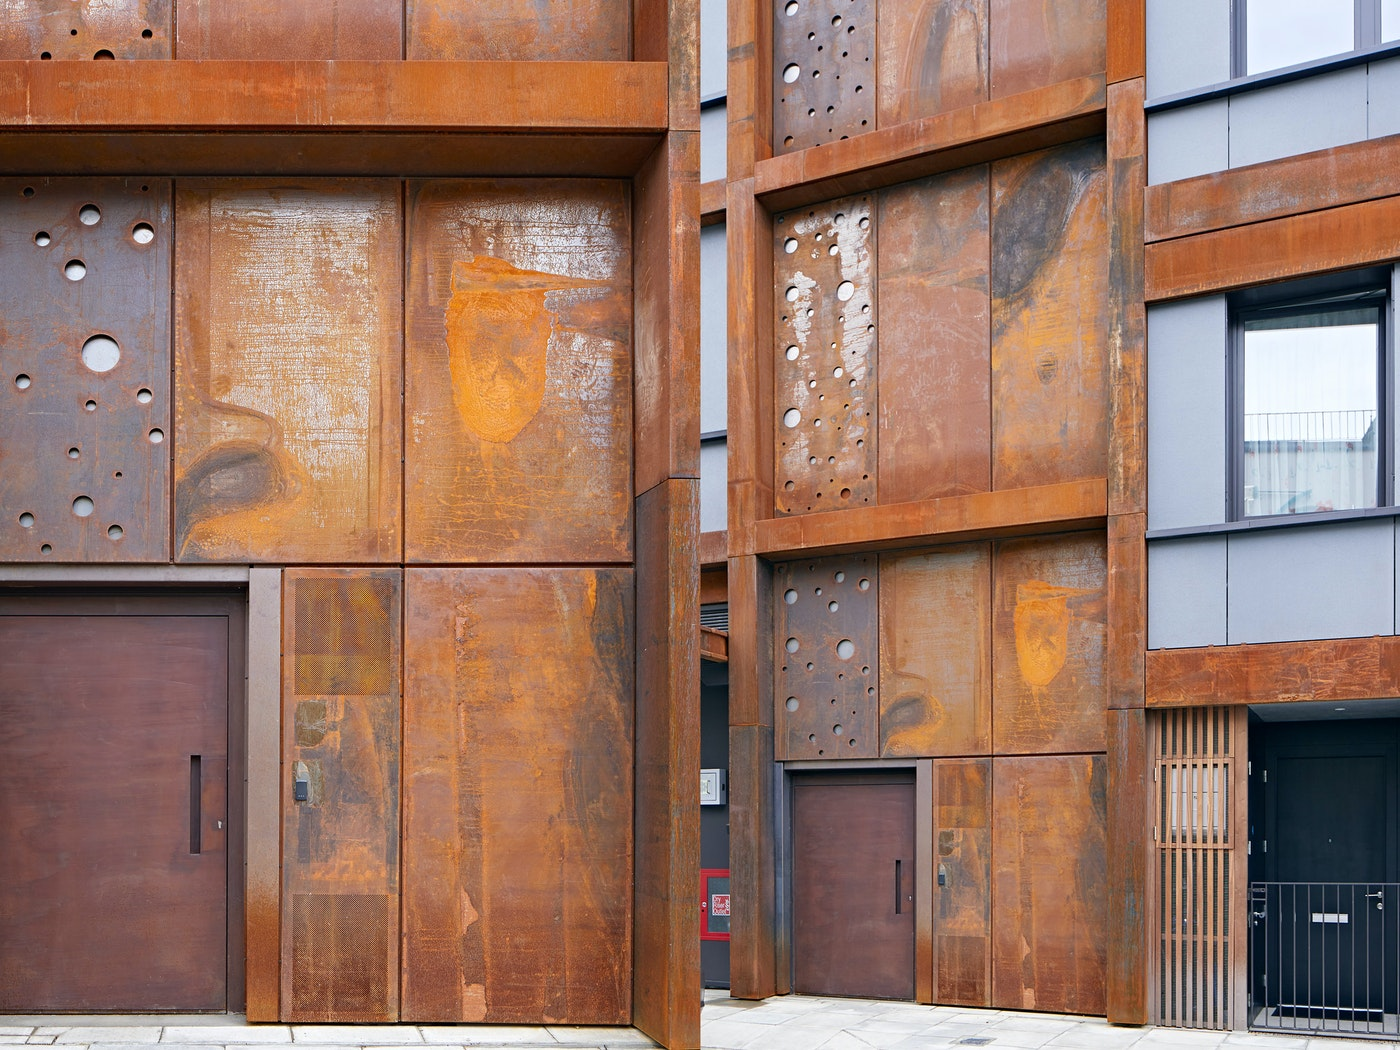 This large steel door fits perfectly with the mixed industrial aesthetic of the building